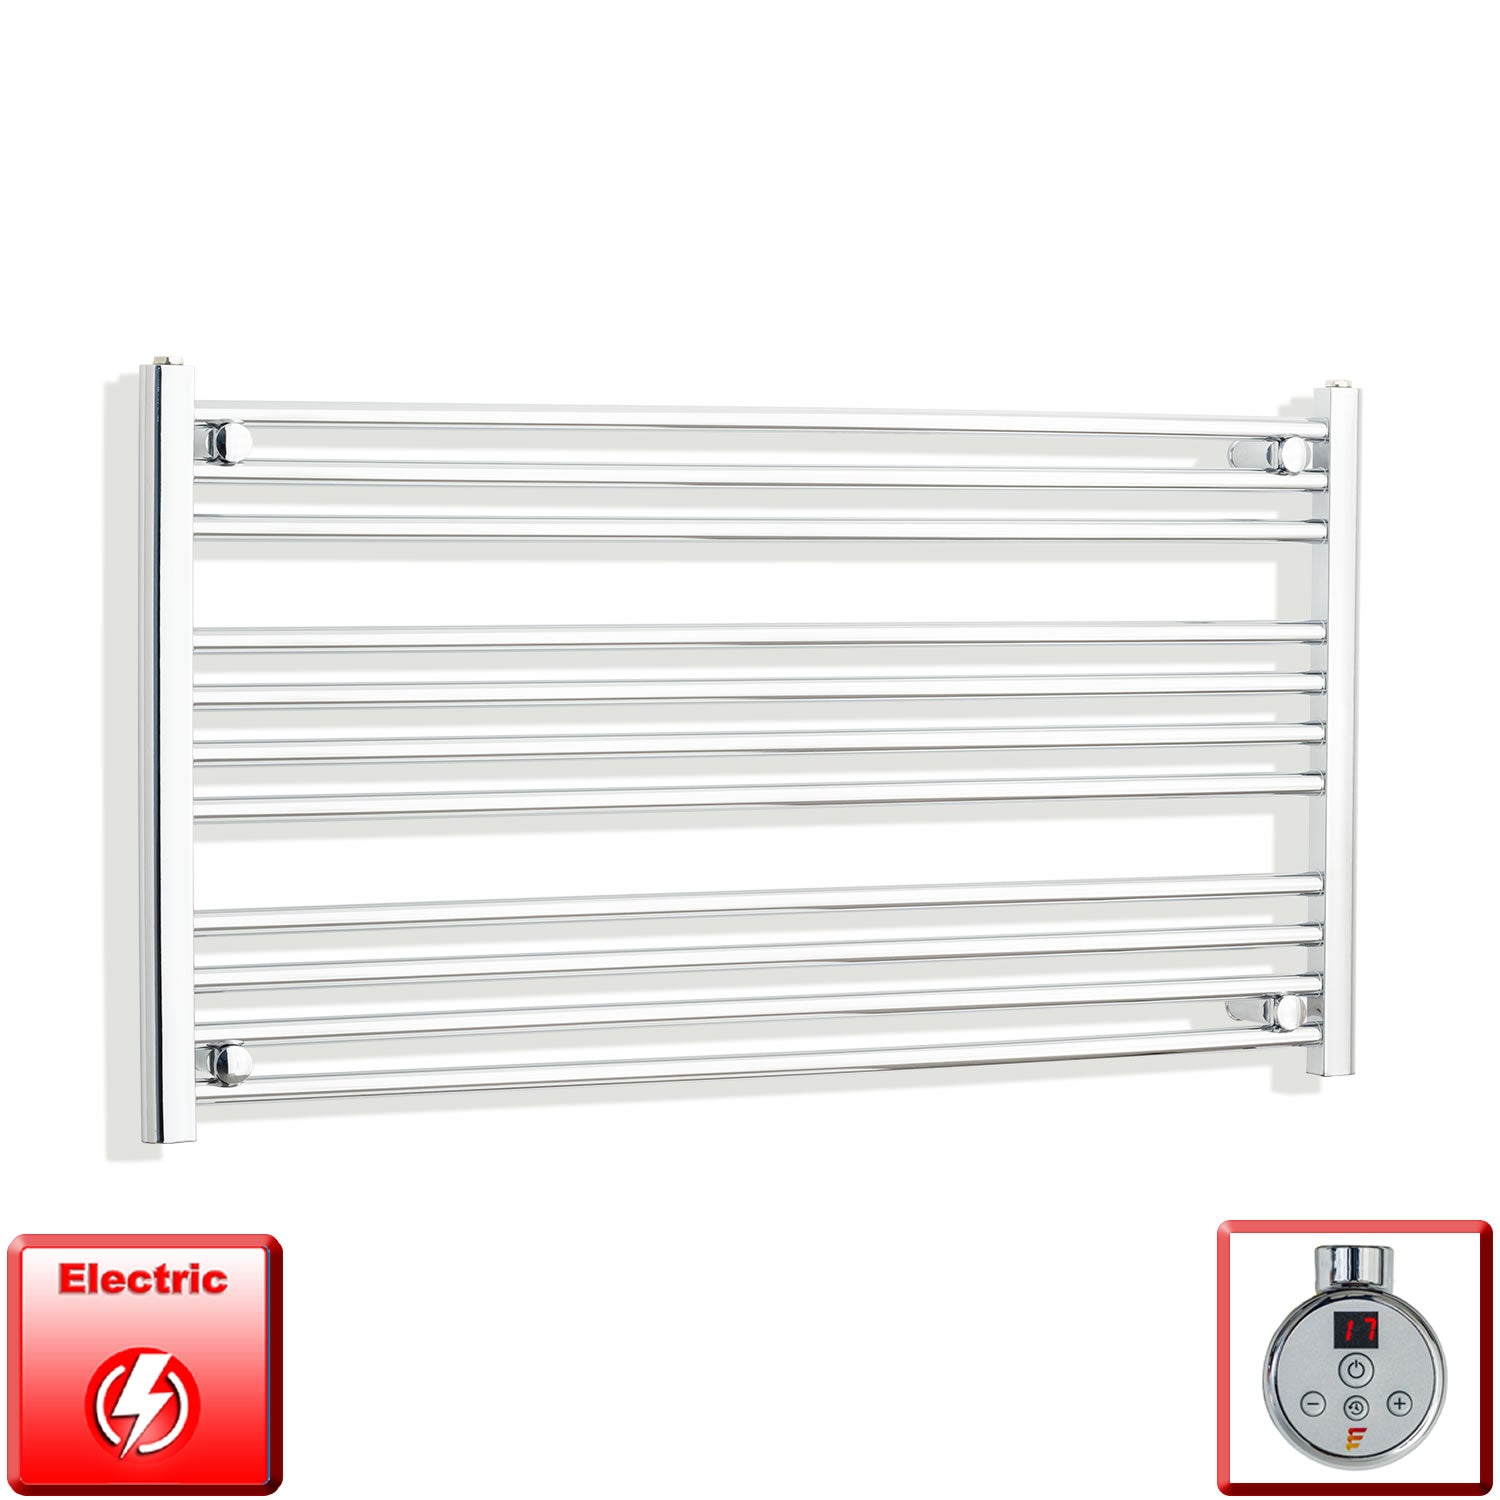 1300mm Wide 600mm High Pre-Filled Chrome Electric Towel Rail Radiator With Thermostatic DIGI Element